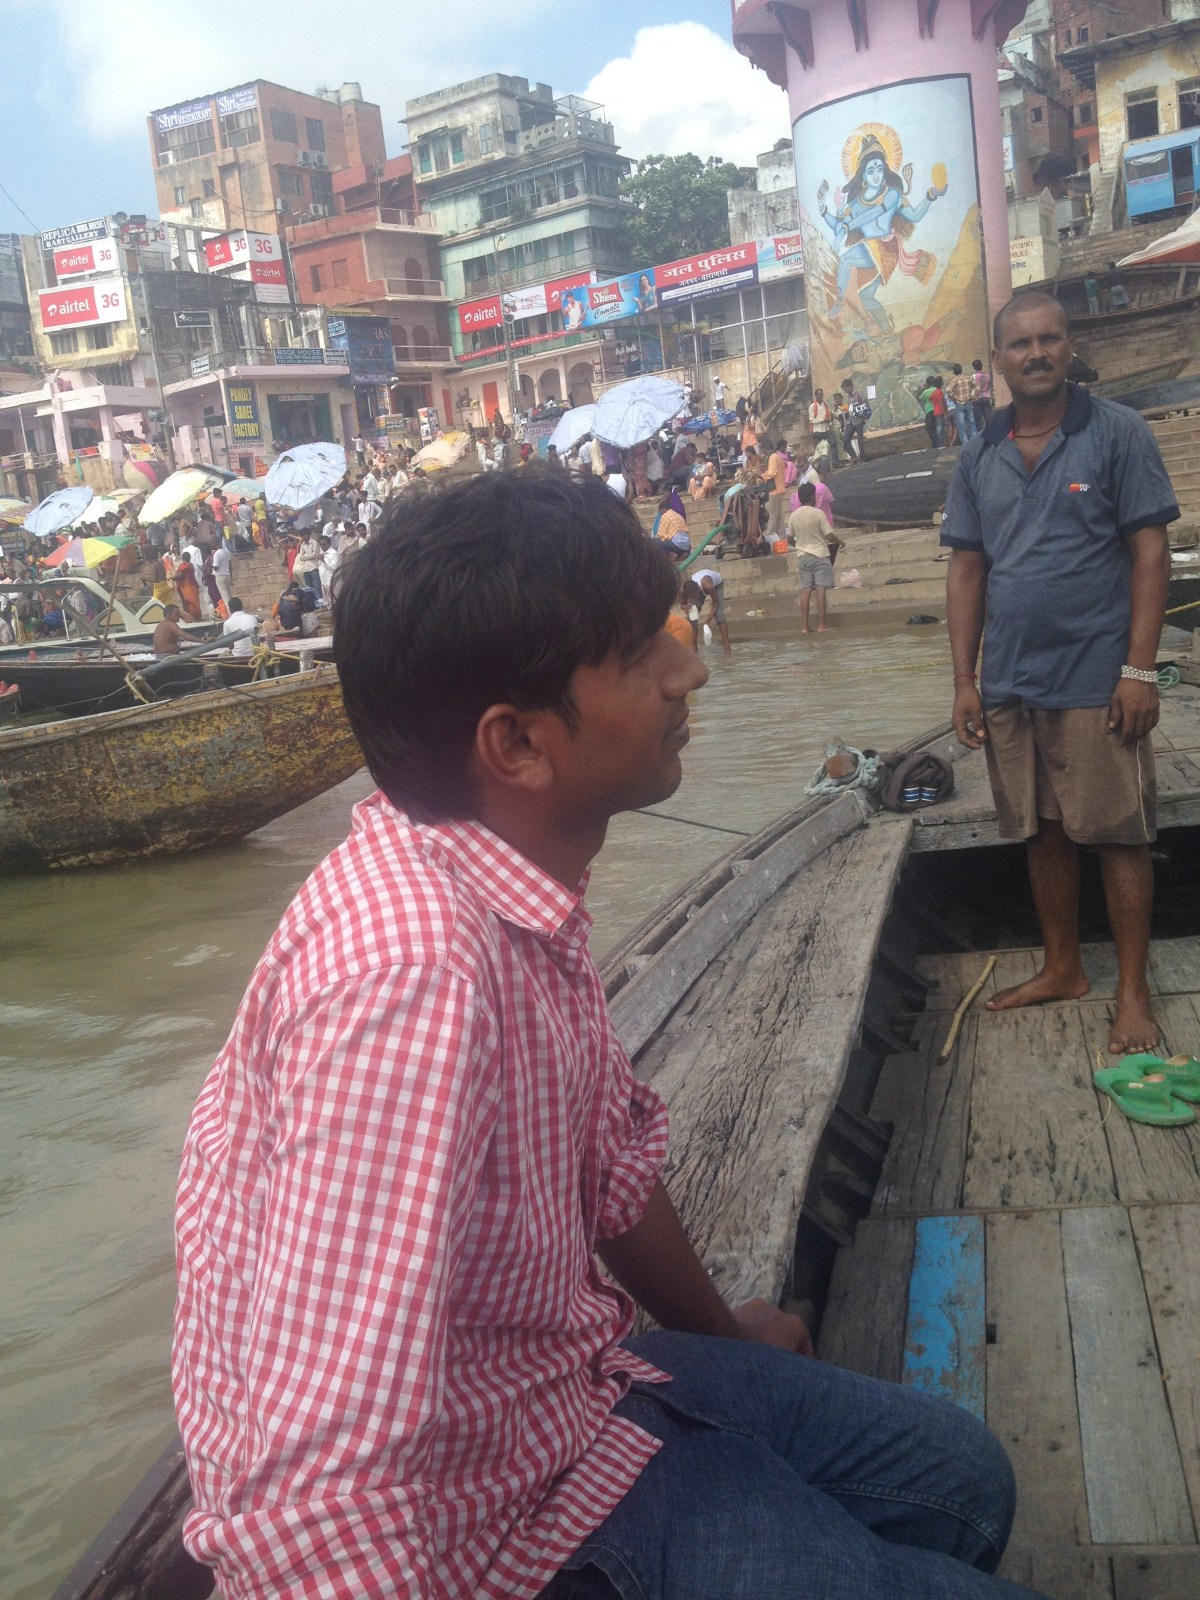 Varanasi Tourism: Ganges River View of the Ghats Part II